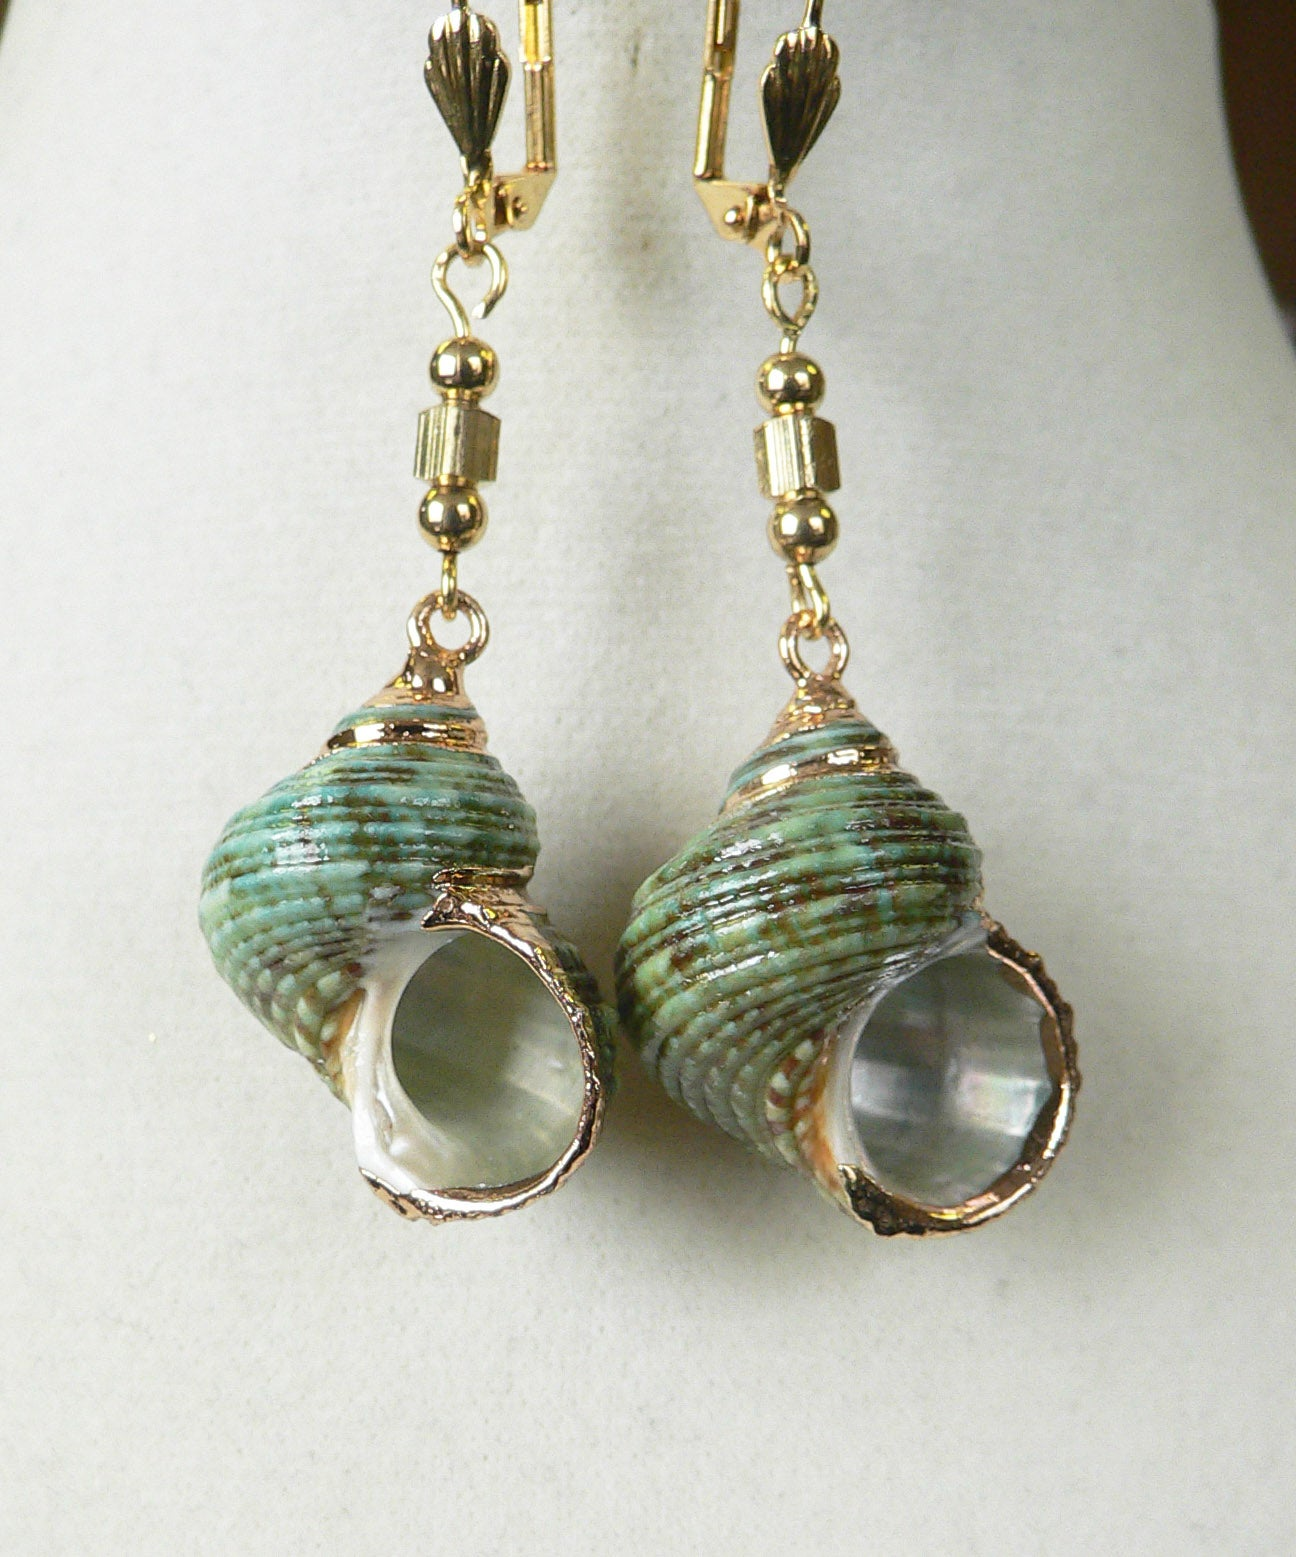 Traxine' Shell earrings